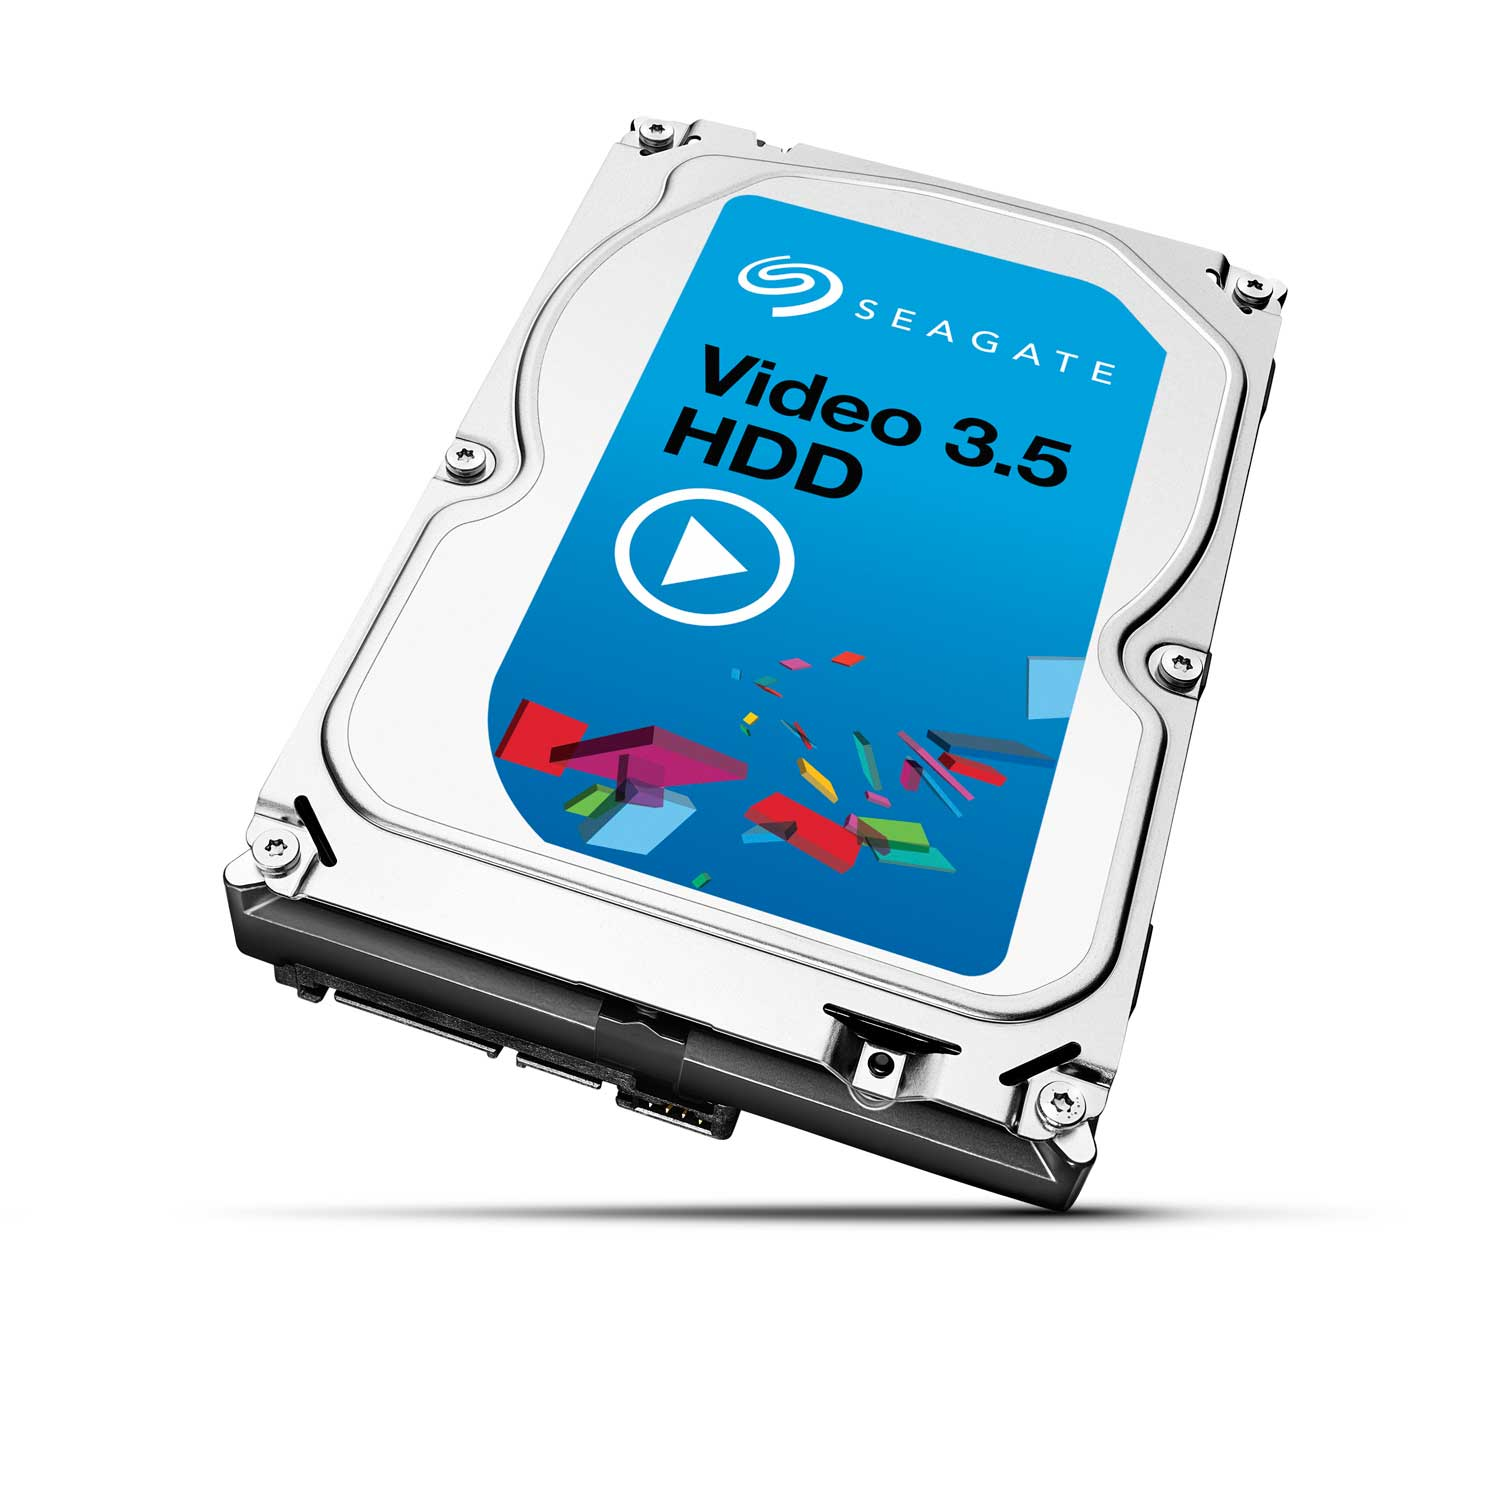 "Disque dur interne Seagate Video 3.5 HDD 4 To Disque dur 3.5"" 4 To 5900 RPM 64 Mo Serial ATA 6 Gb/s"